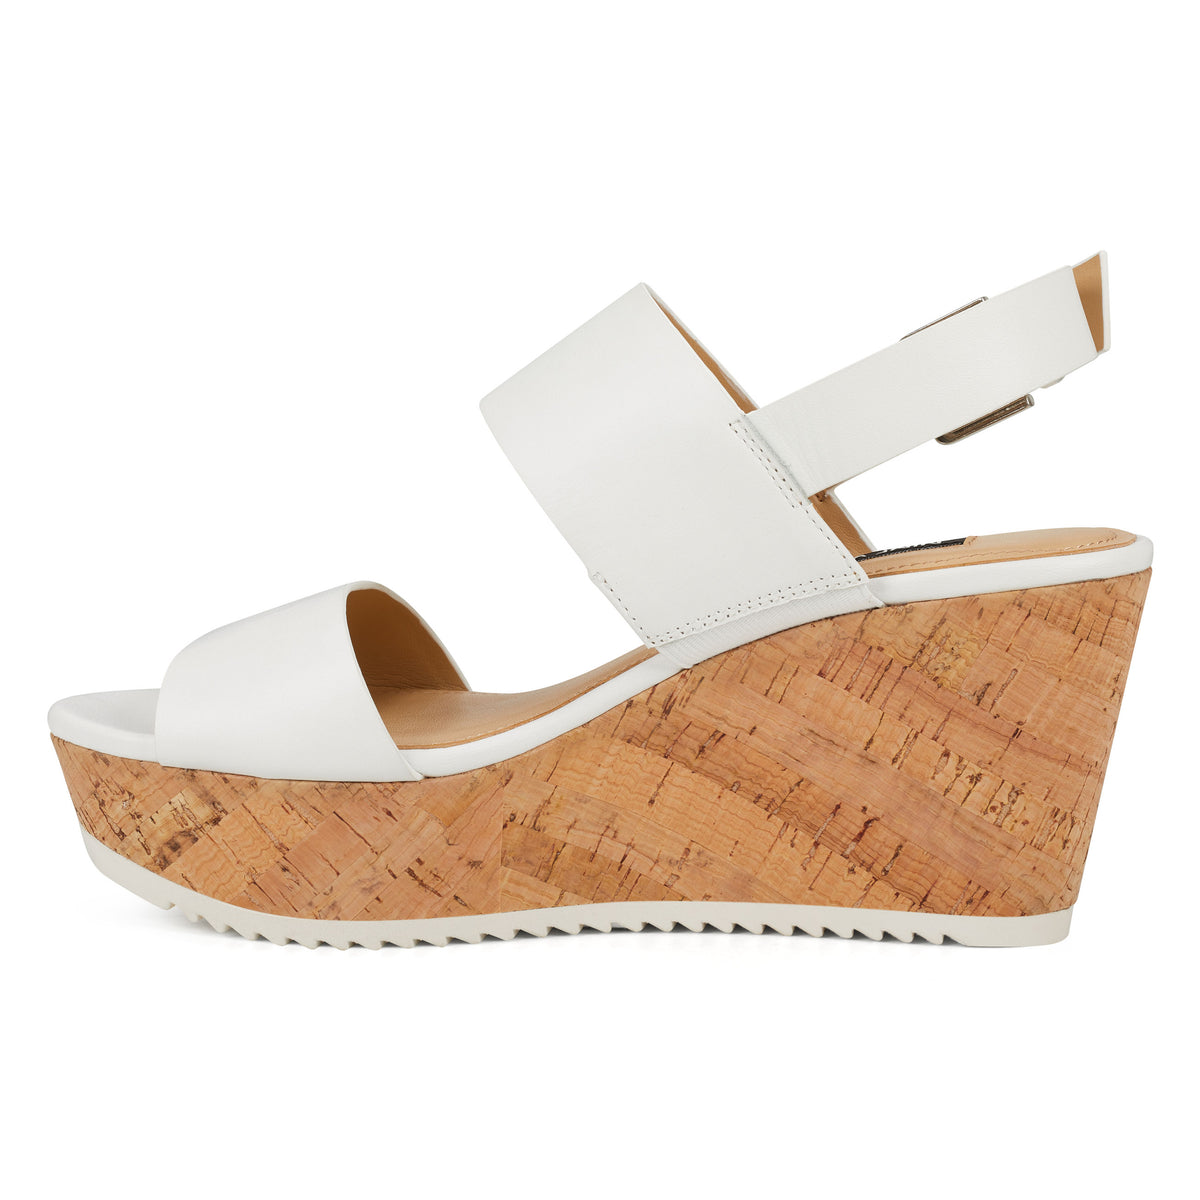 dera-platform-wedge-sandals-in-white-leather